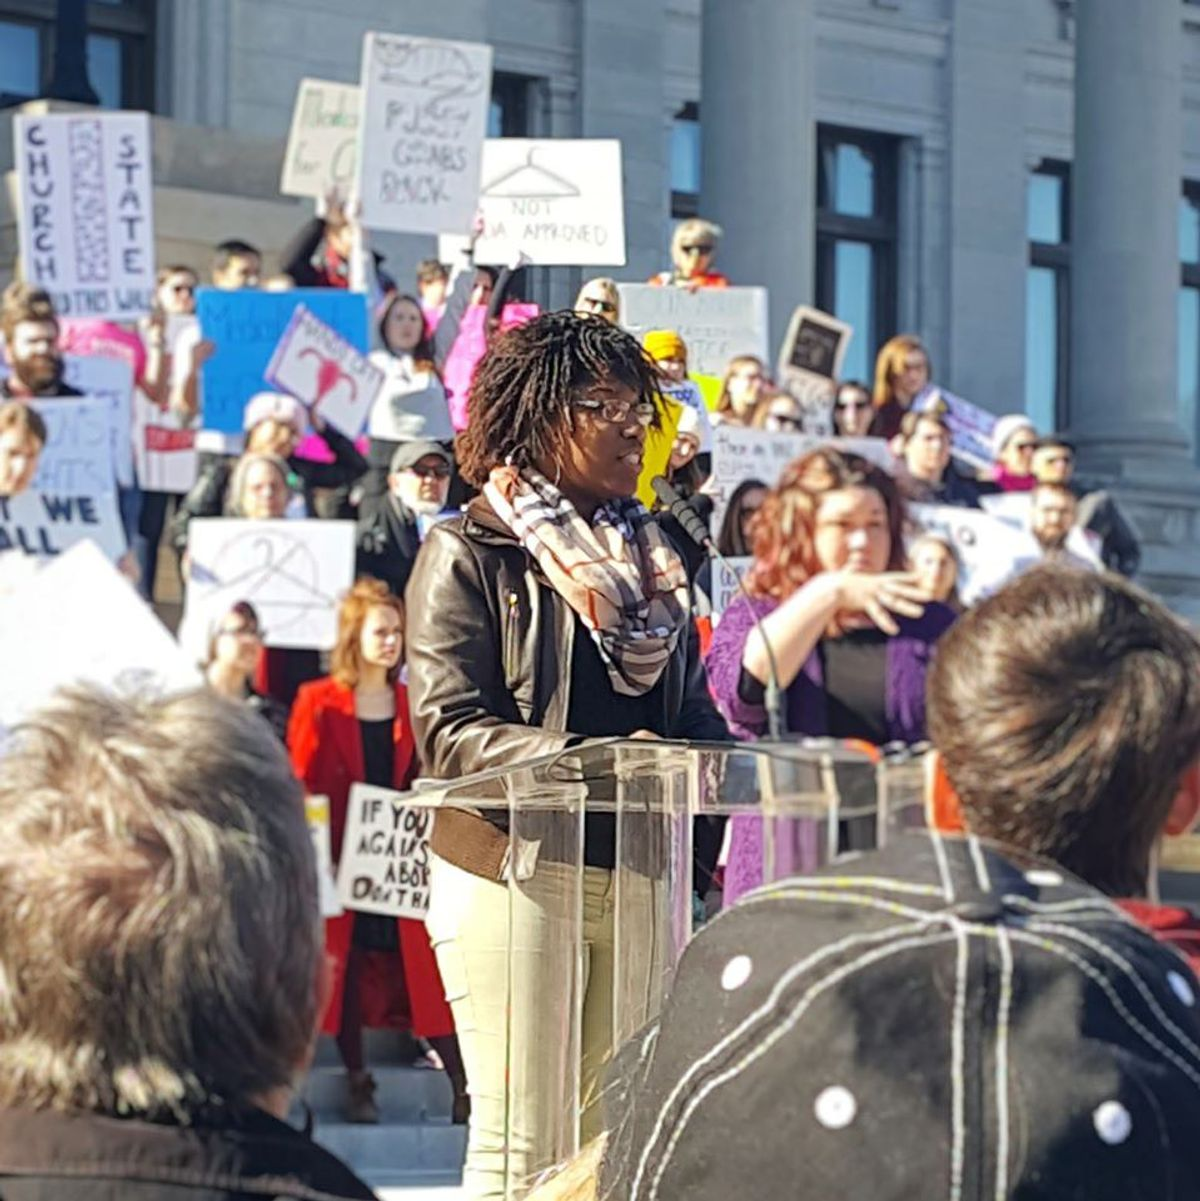 Rae Nelson Makes Arkansas History As First Black Trans Woman To Speak At Annual Reproductive Justice Rally